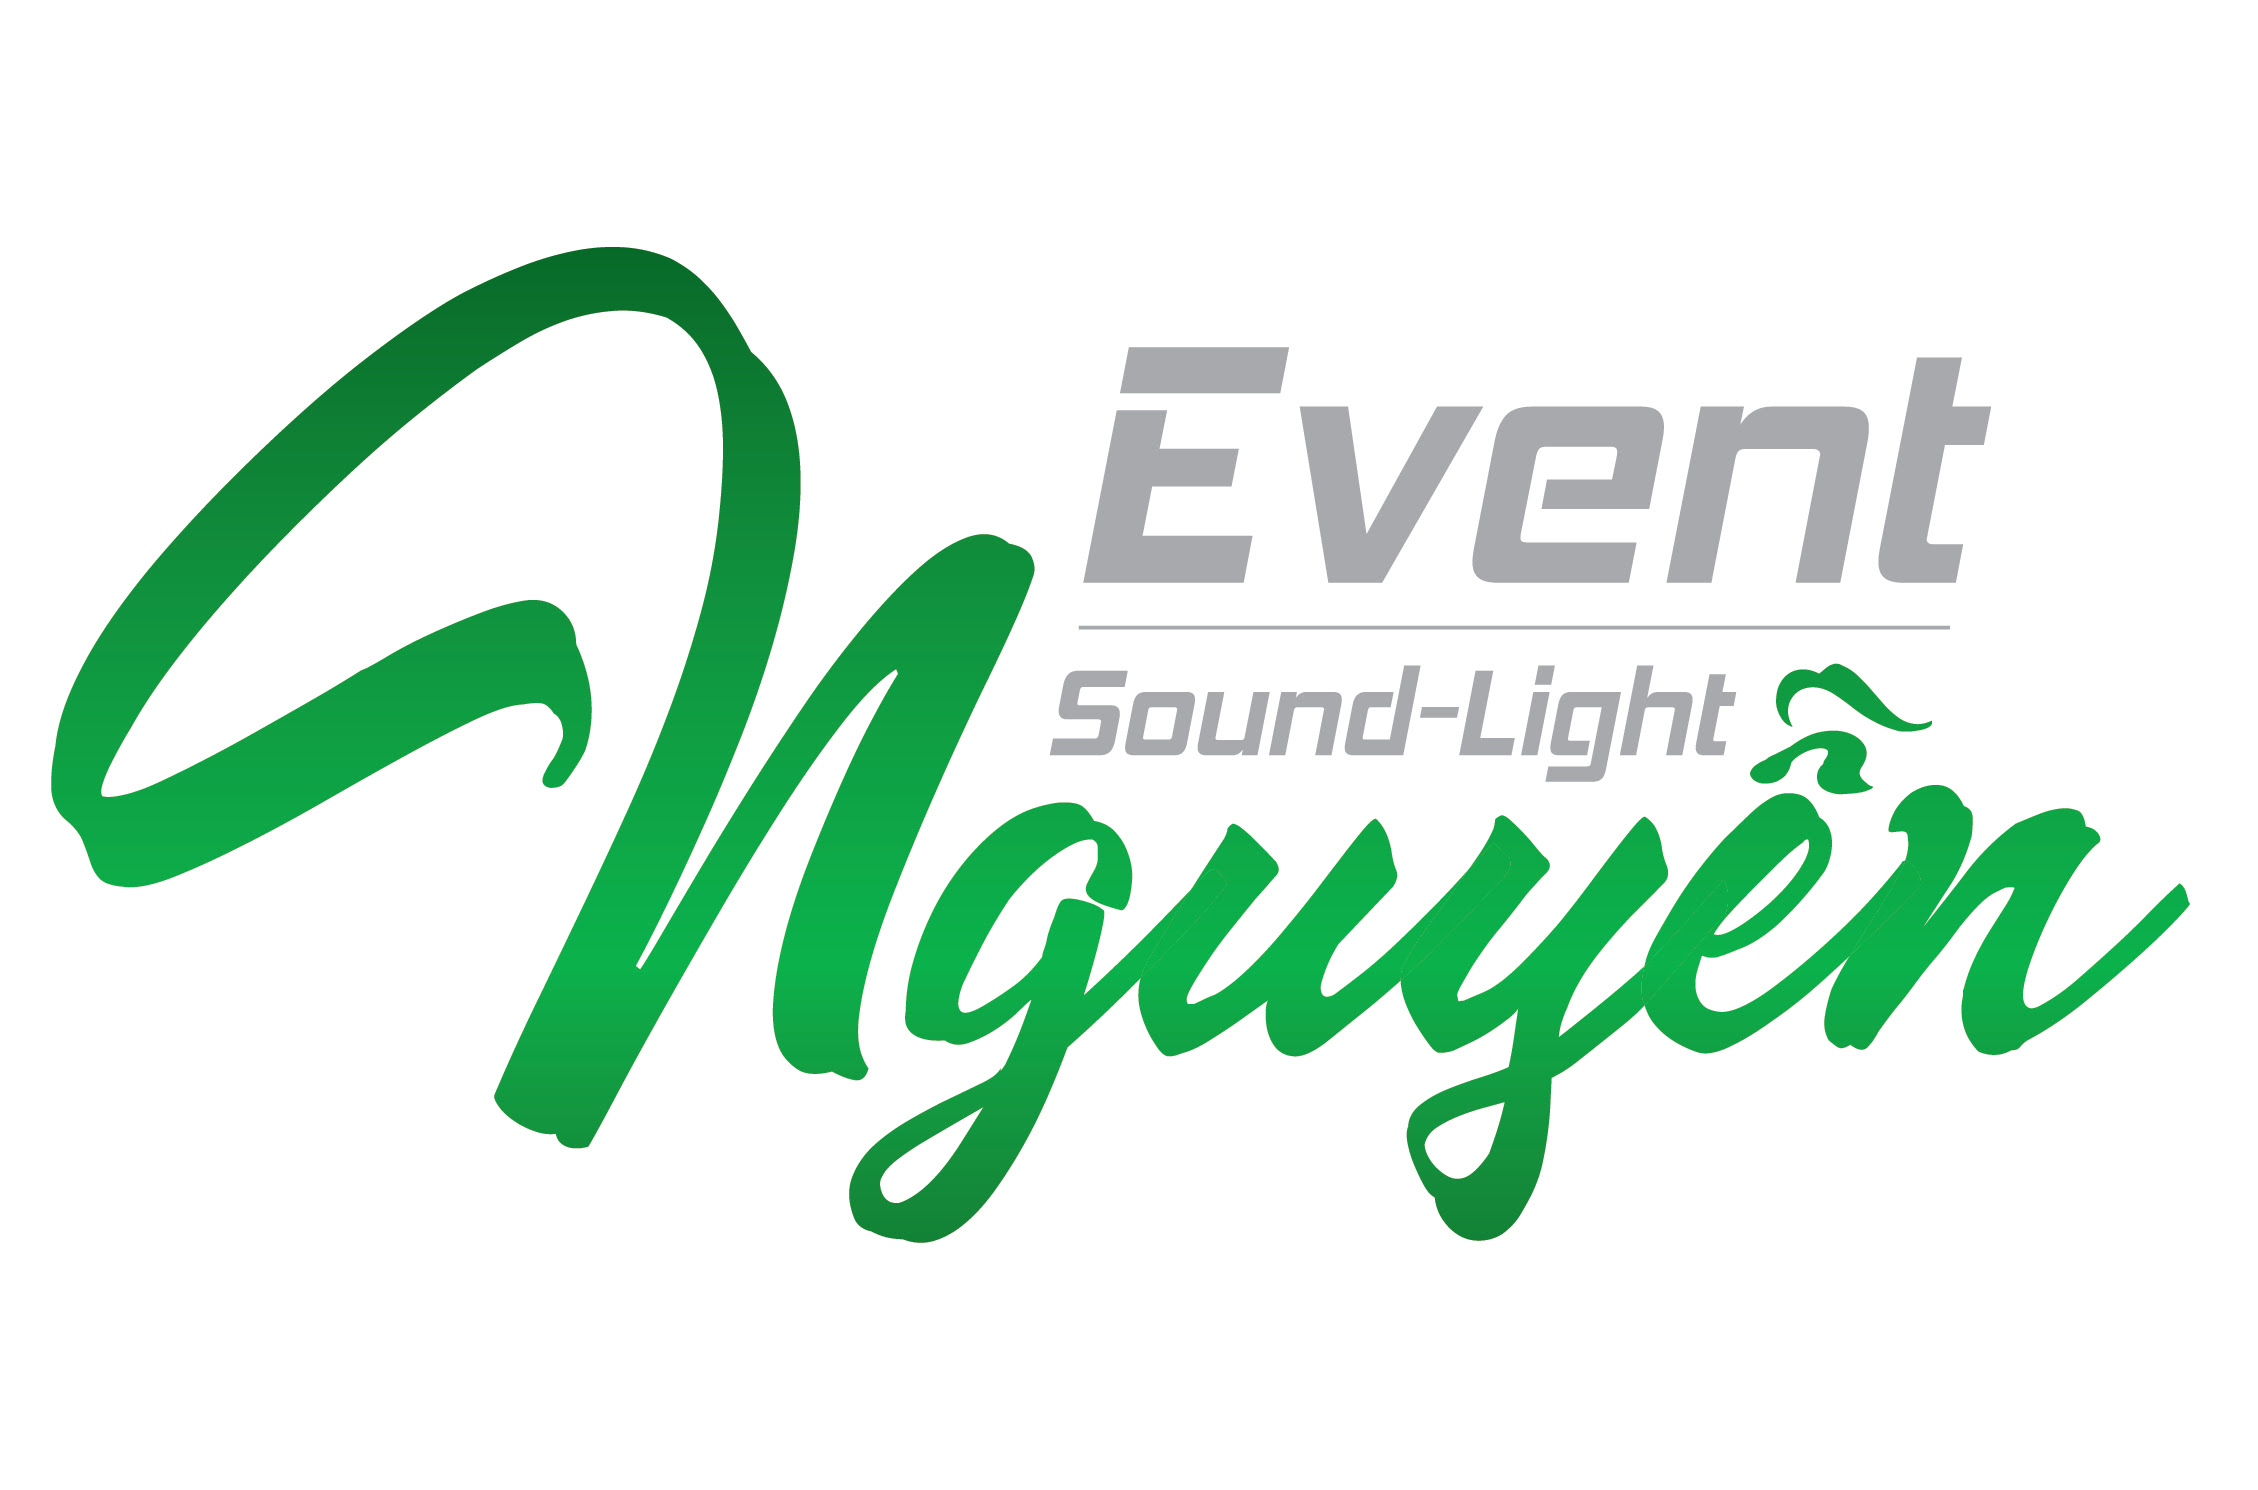 NGUYỄN EVENT